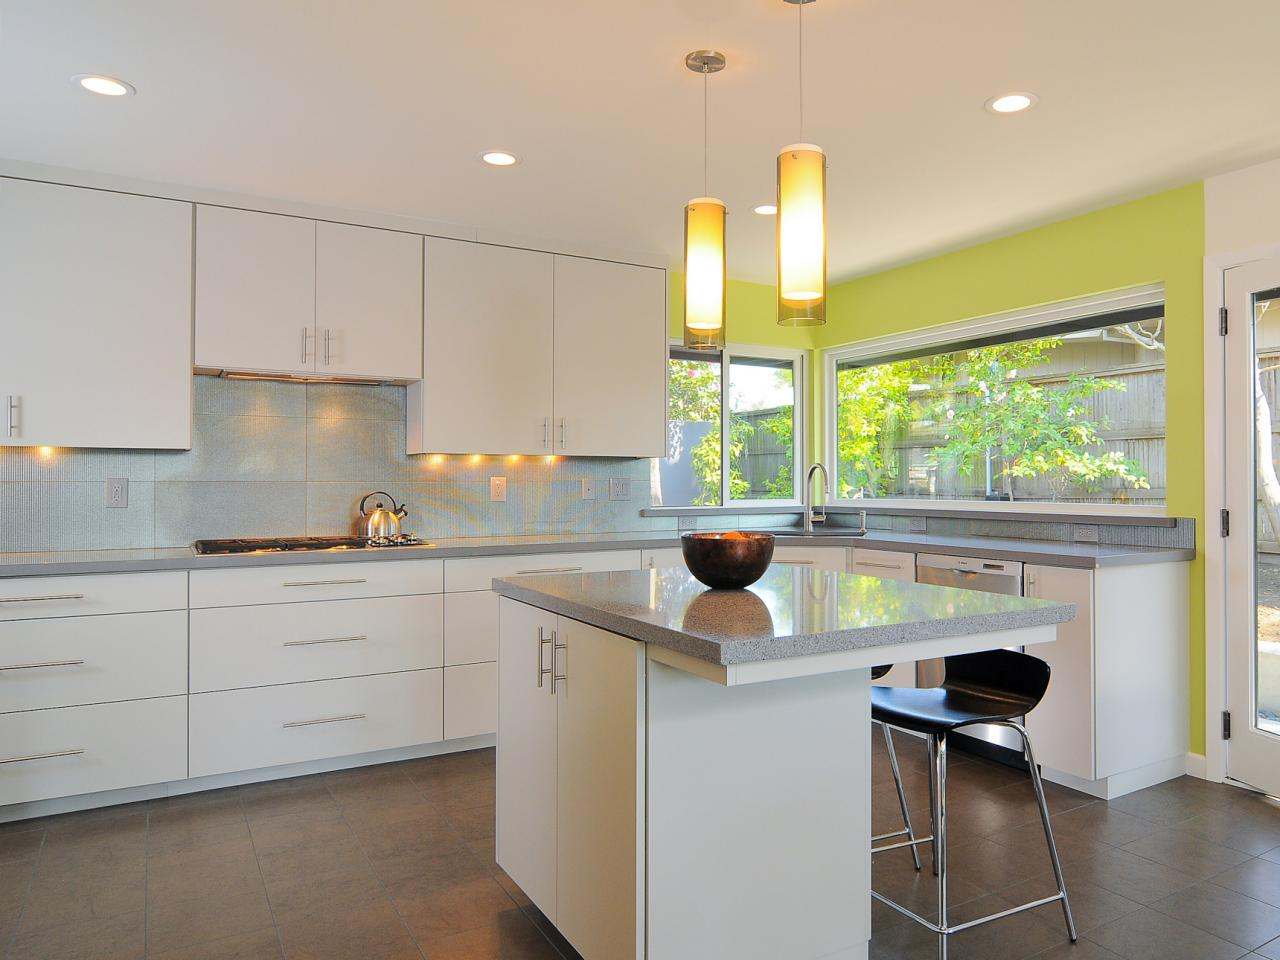 Modern White Kitchen Images kitchen cabinet colors and finishes: pictures, options, tips